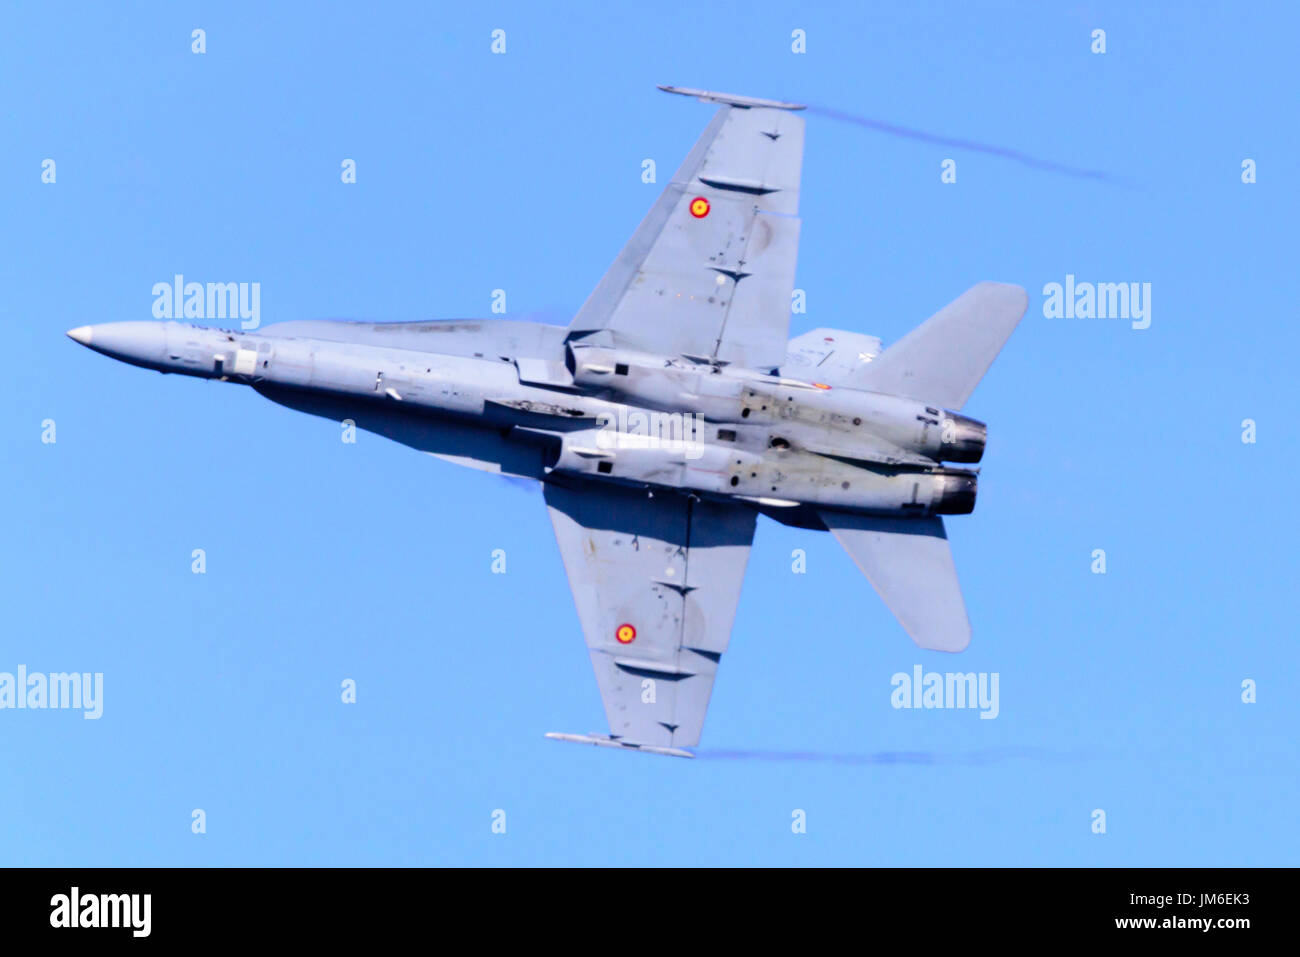 McDonnell Douglas EF-18 F-18 Hornet supersonic jet fighter from the Spanish Air Force. Stock Photo